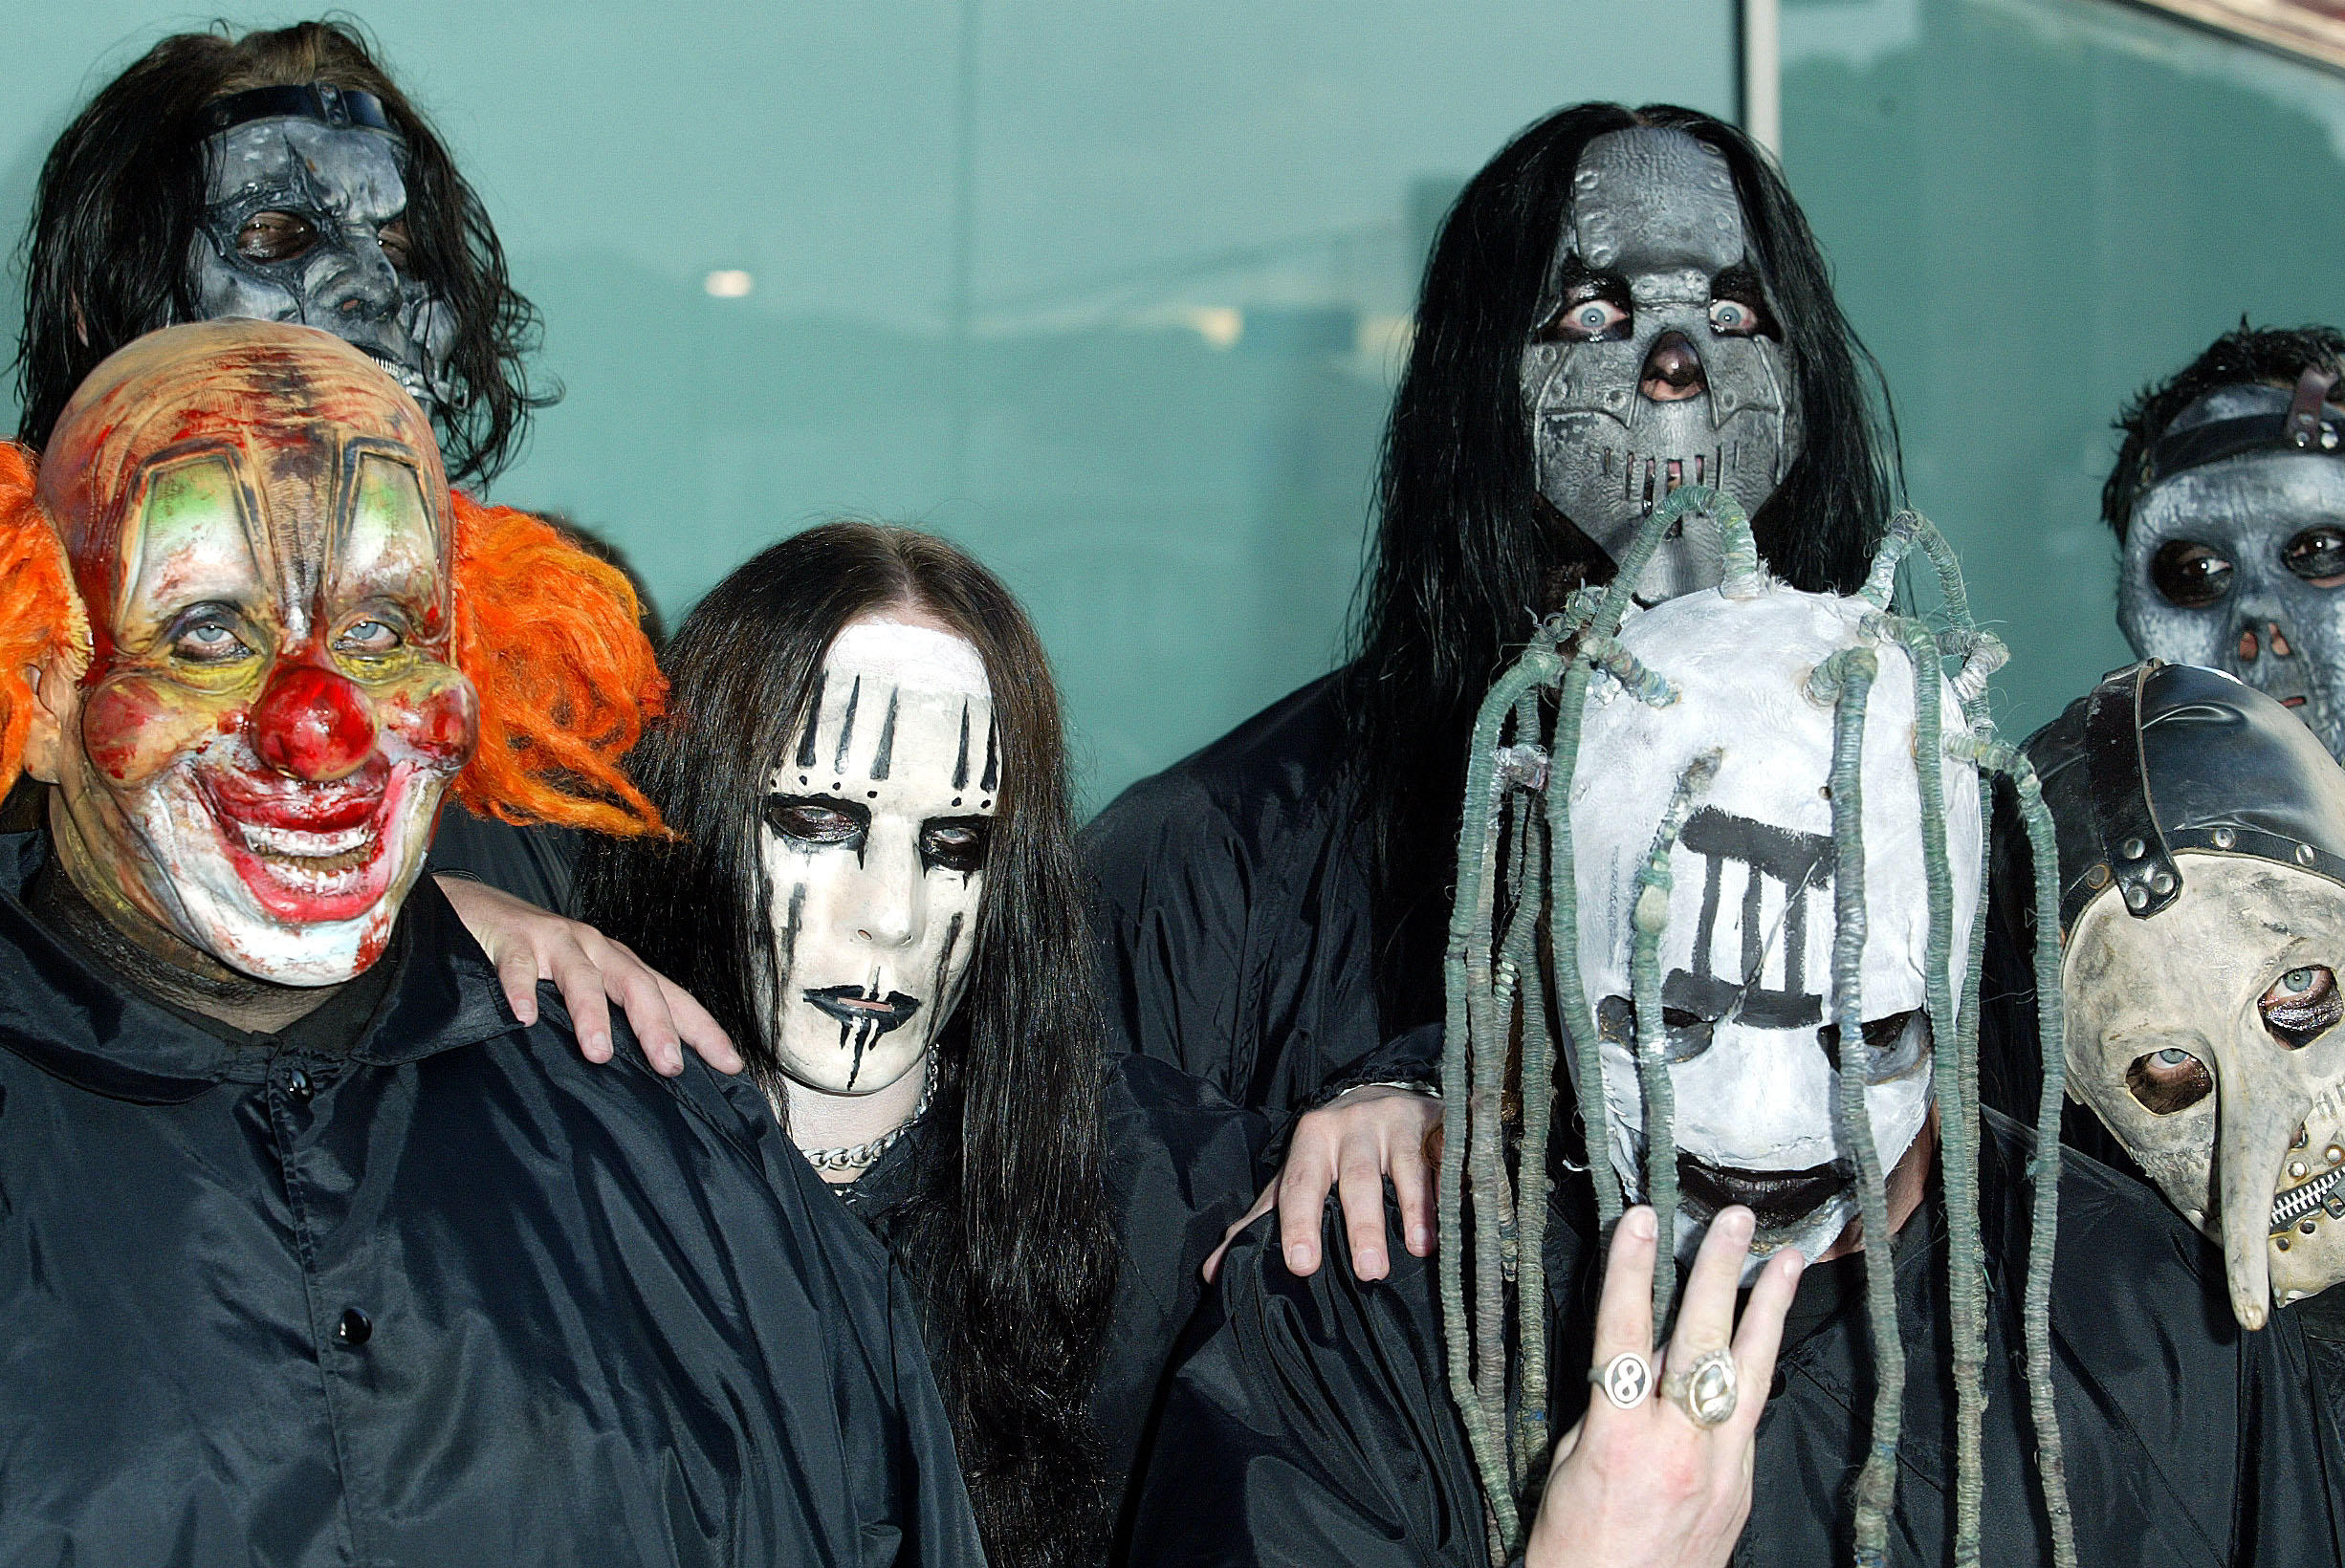 Why did Slipknot sue Burger King